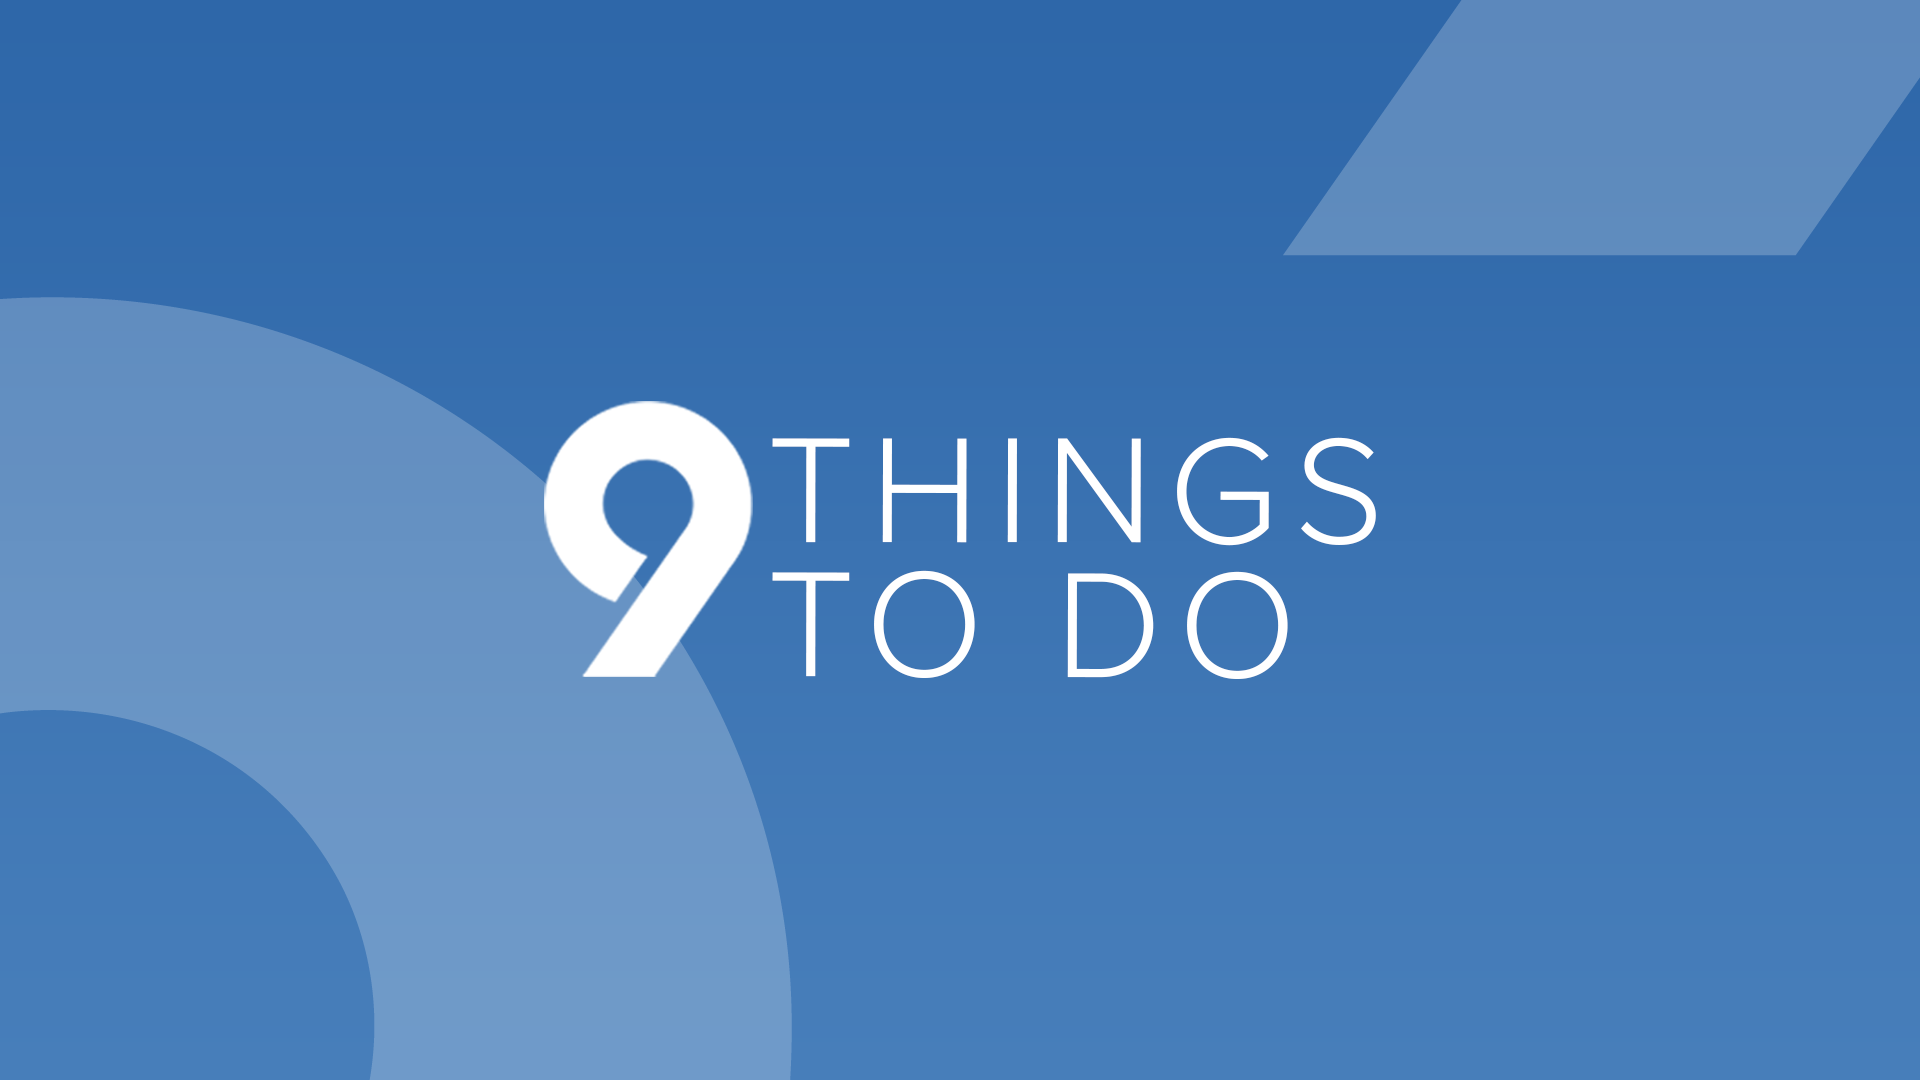 9Things to Do